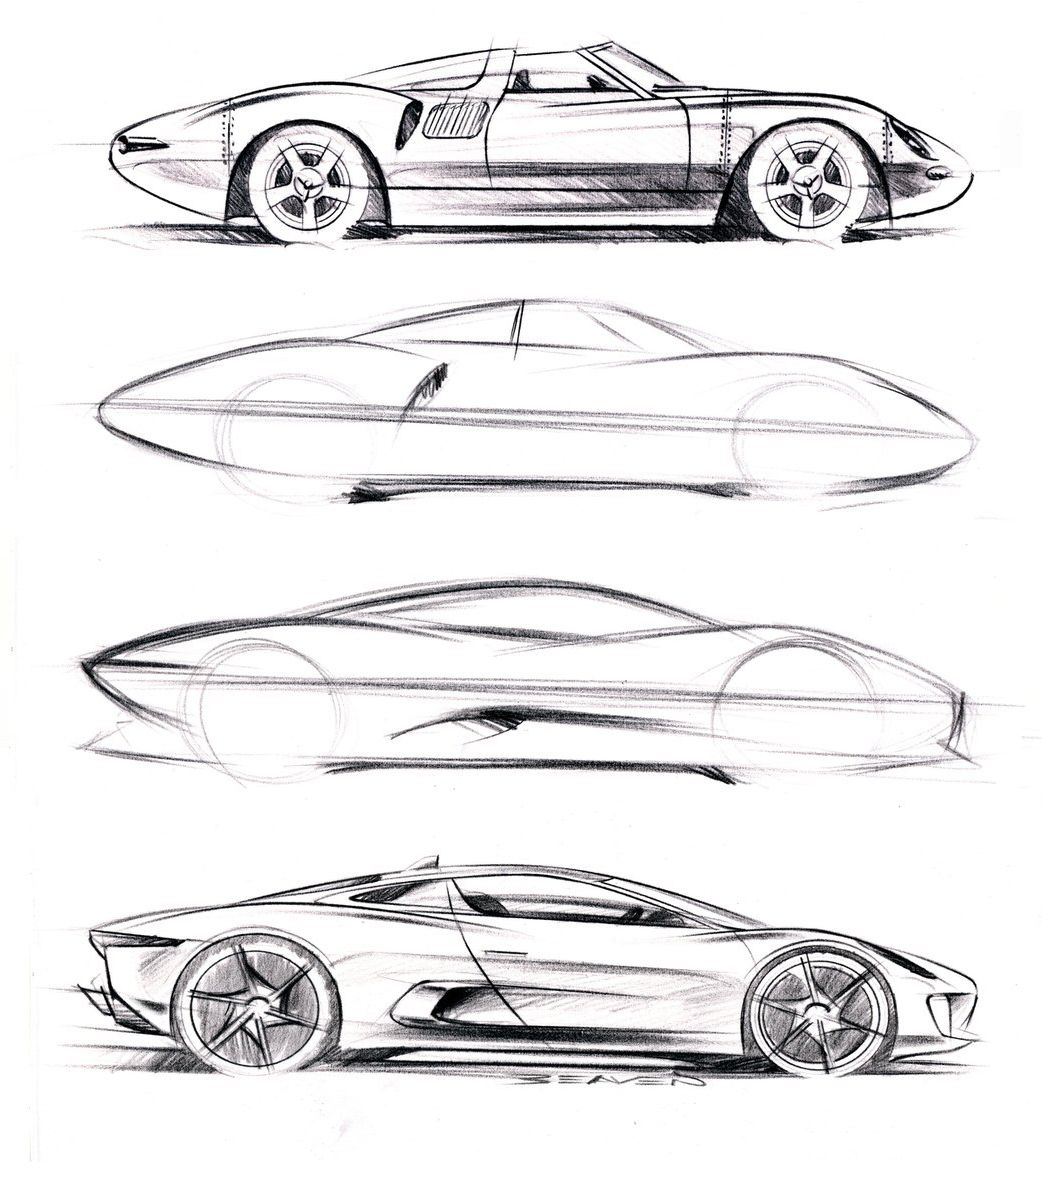 Awesome simple sketch | Ath_07 | Pinterest | Sketches, Cars and Car ...